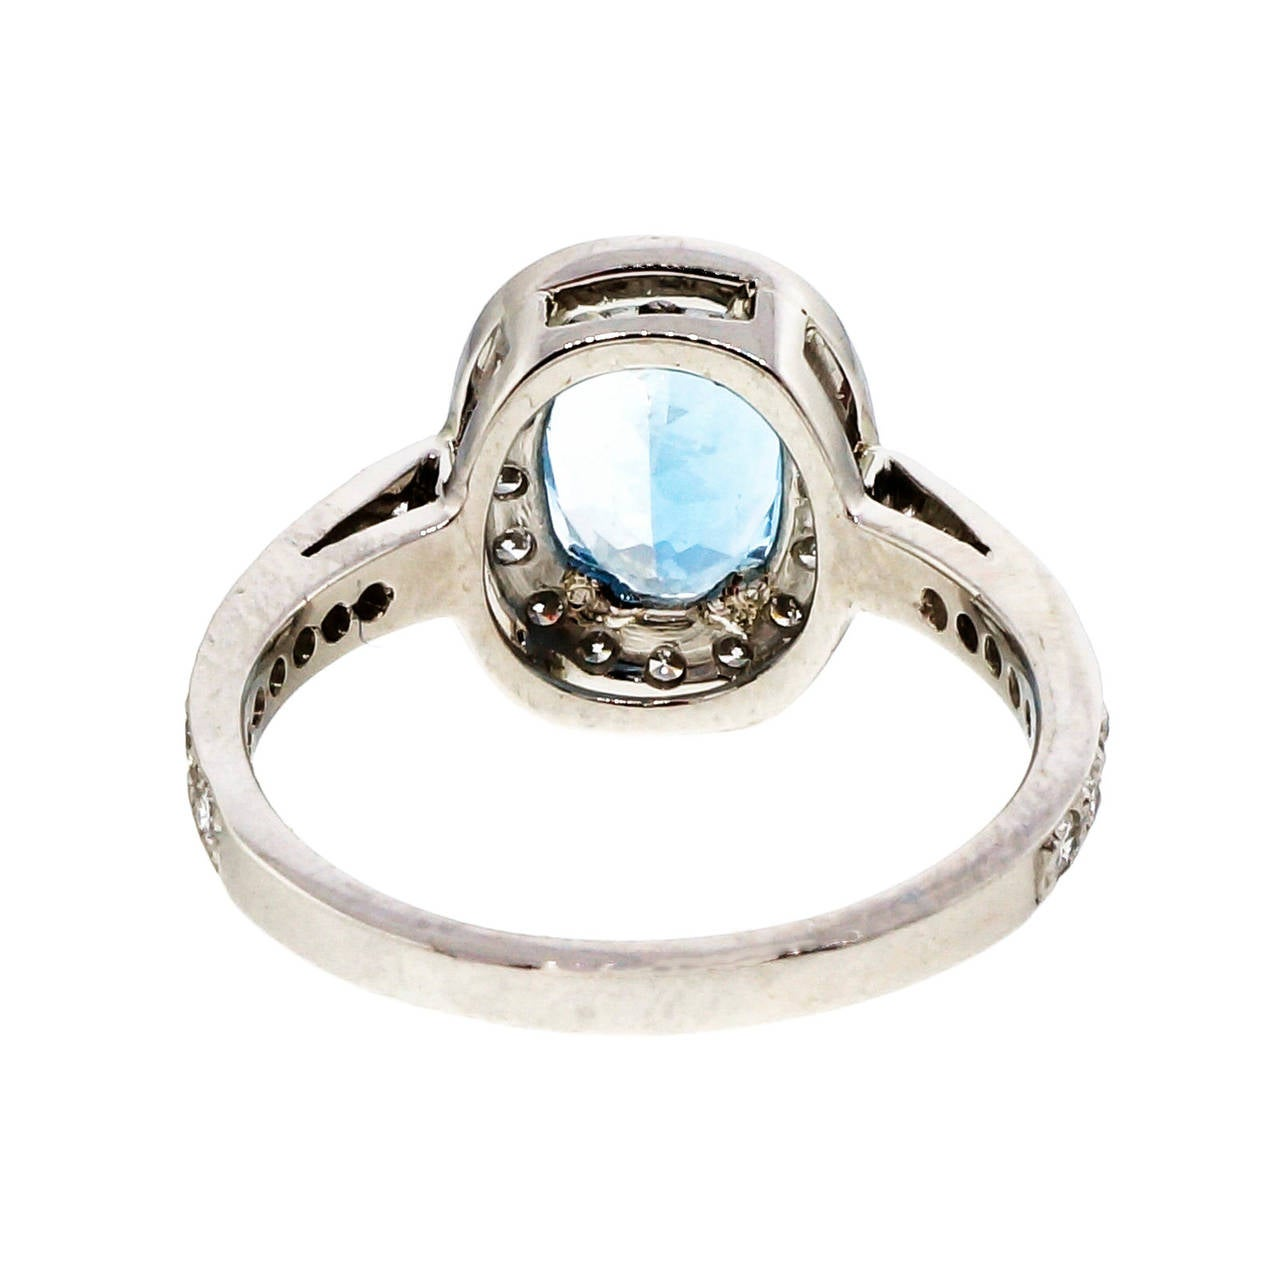 Well made solid Platinum Halo style ring with Ideal F, VS diamonds and a bright sparkly untreated Aqua. Extra fine high grade quality. Circa 1980.